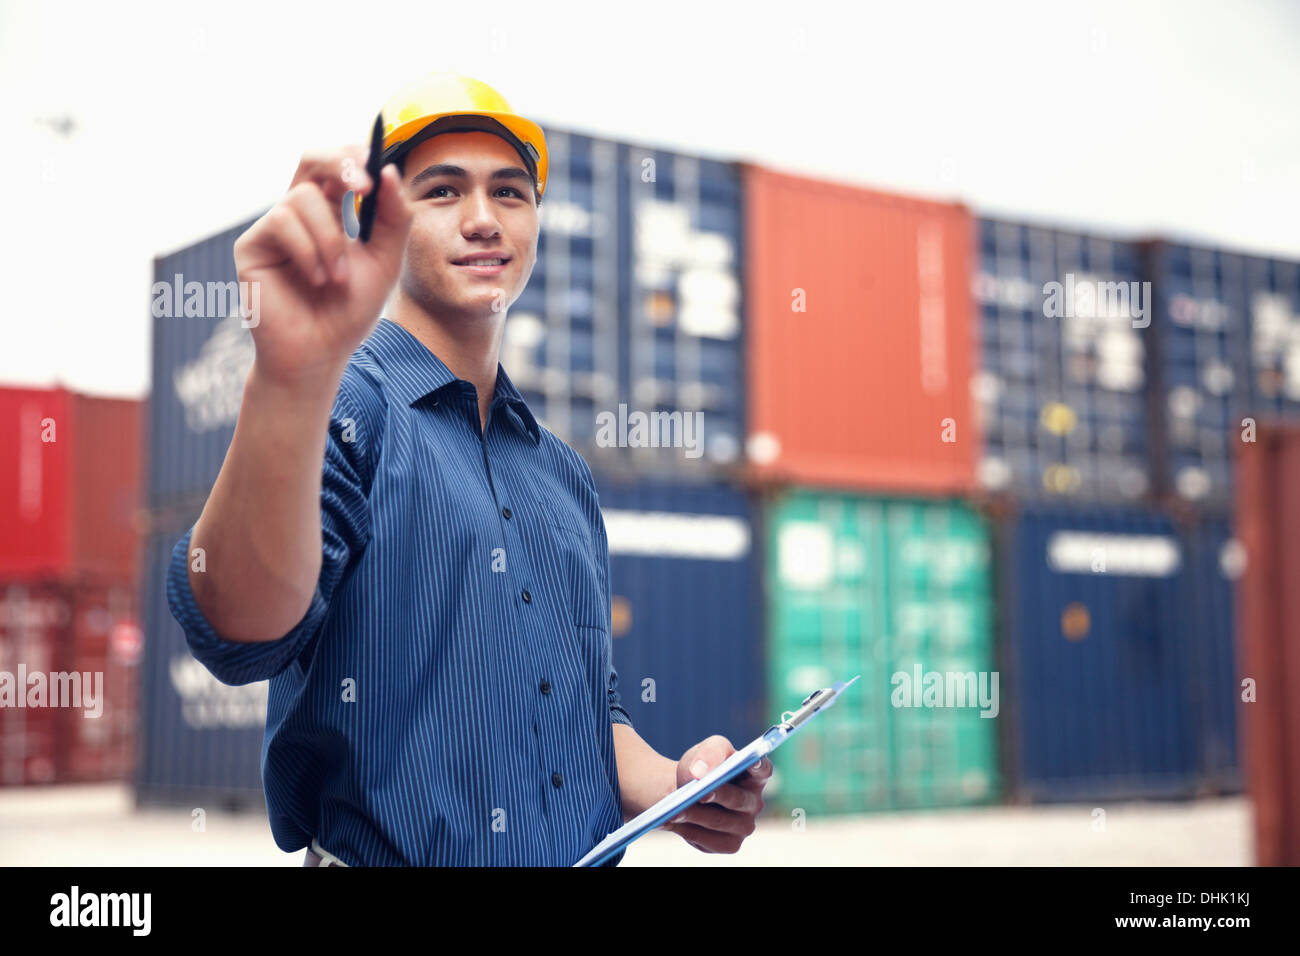 Smiling young engineer in protective work wear in a shipping yard examining cargo - Stock Photo